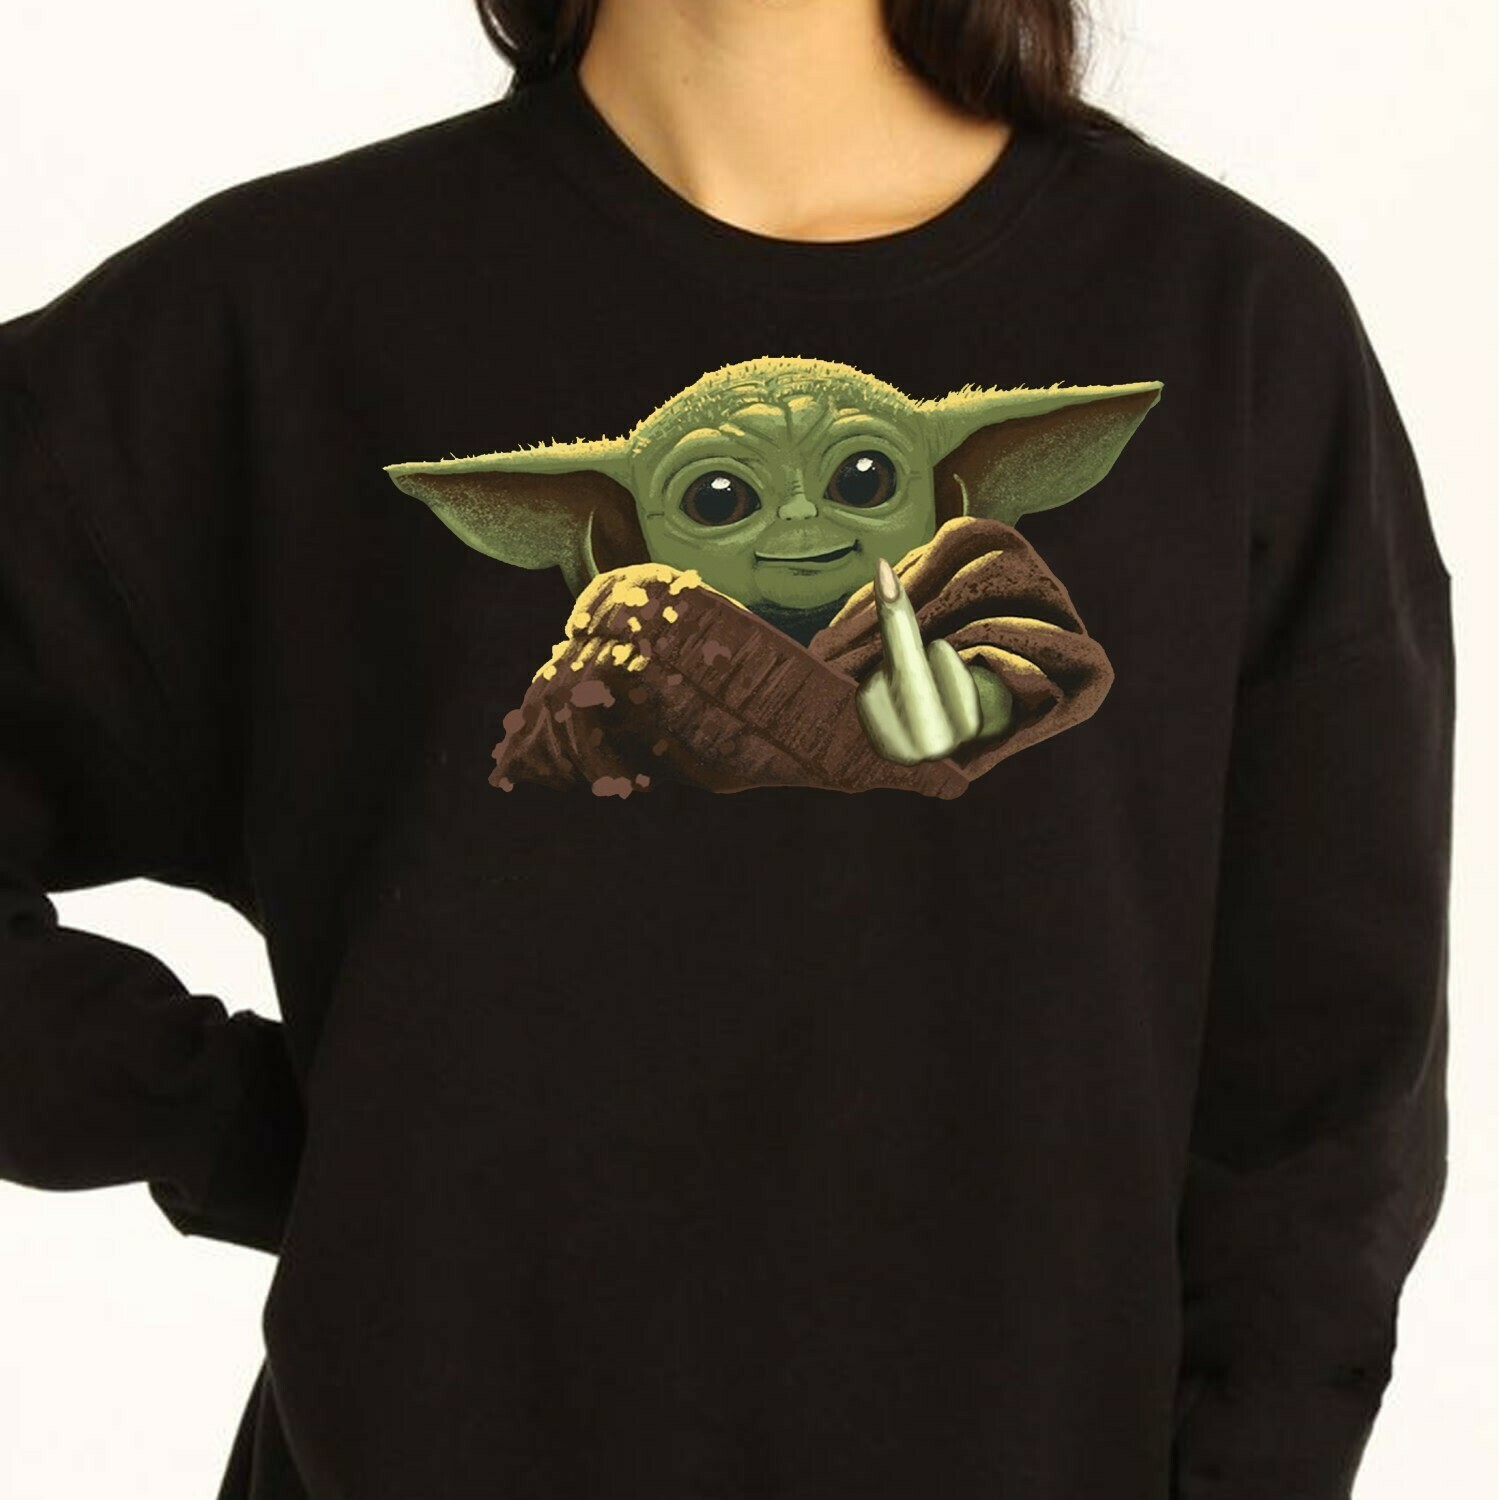 Baby Yoda Middle Finger Shirt,Funny Movie Memes Star Wars The Mandalorian The Rise of Skywalker funny fan gift T shirt Long Sleeve Sweatshirt Hoodie Jolly Family Gifts